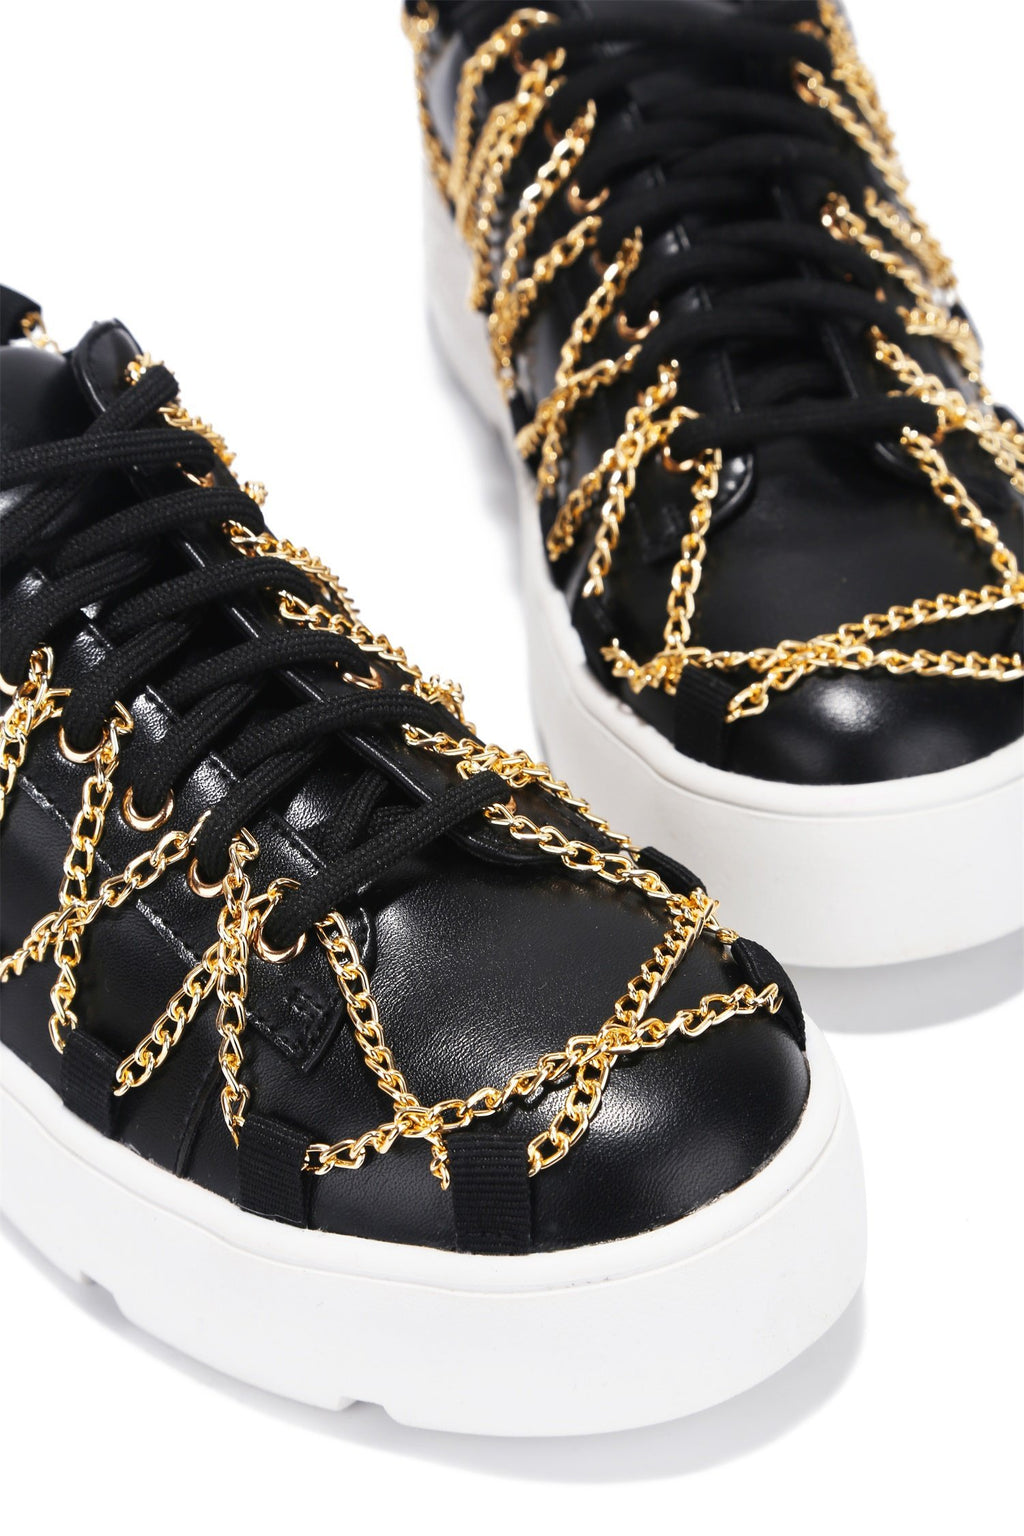 MISFIT LIVING MY DREAM SNEAKERS-BLACK